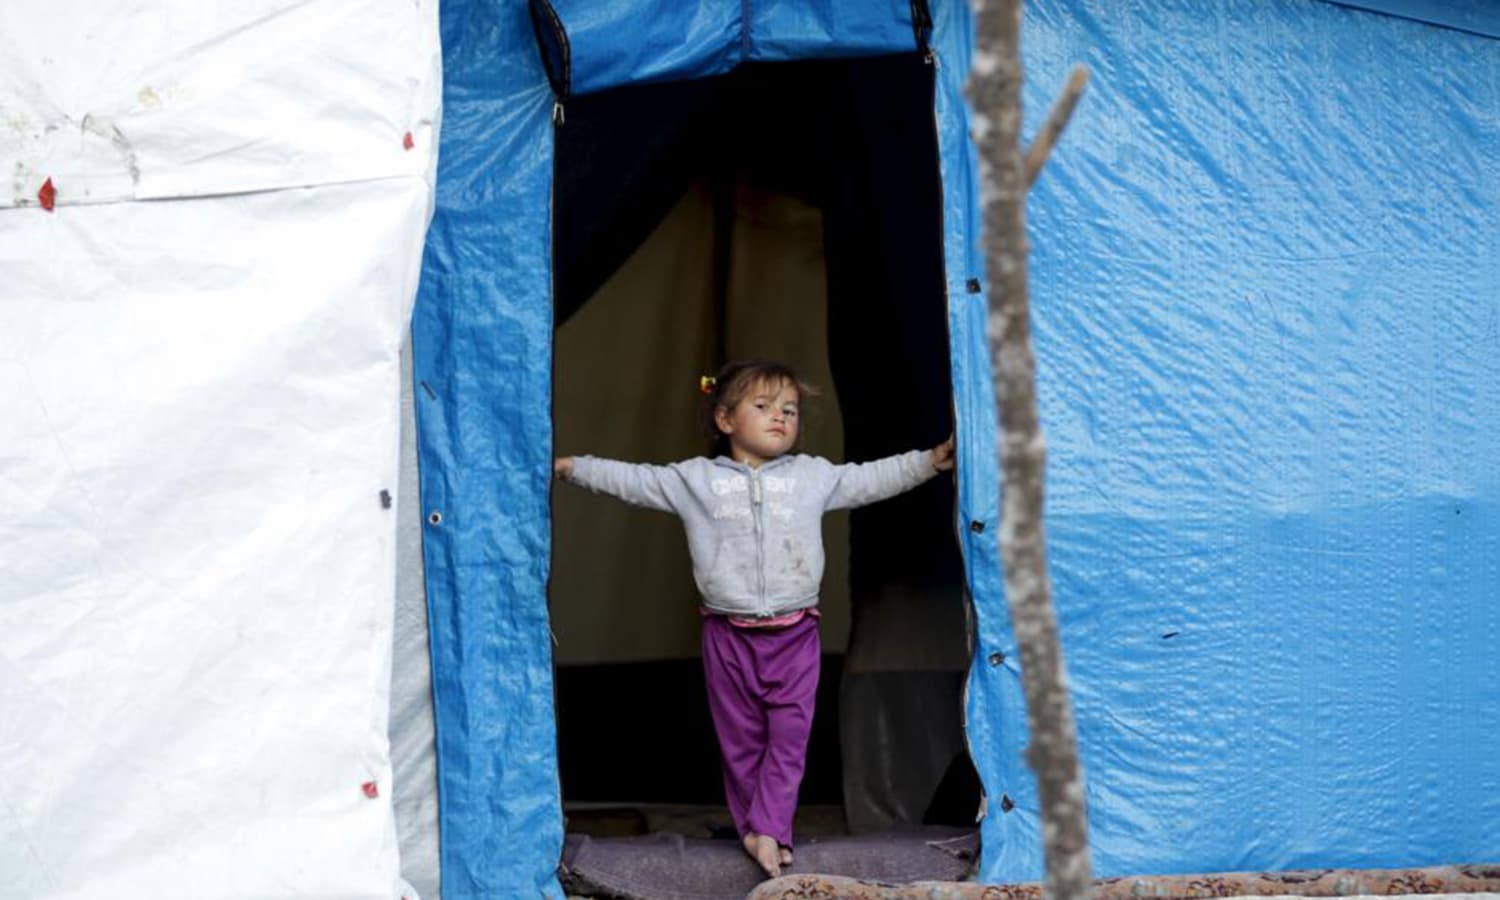 An internally displaced girl stands at the entrance of her tent in Rihaniyya camp, near the Syrian-Turkish border in Jabal al-Turkman. — Reuters